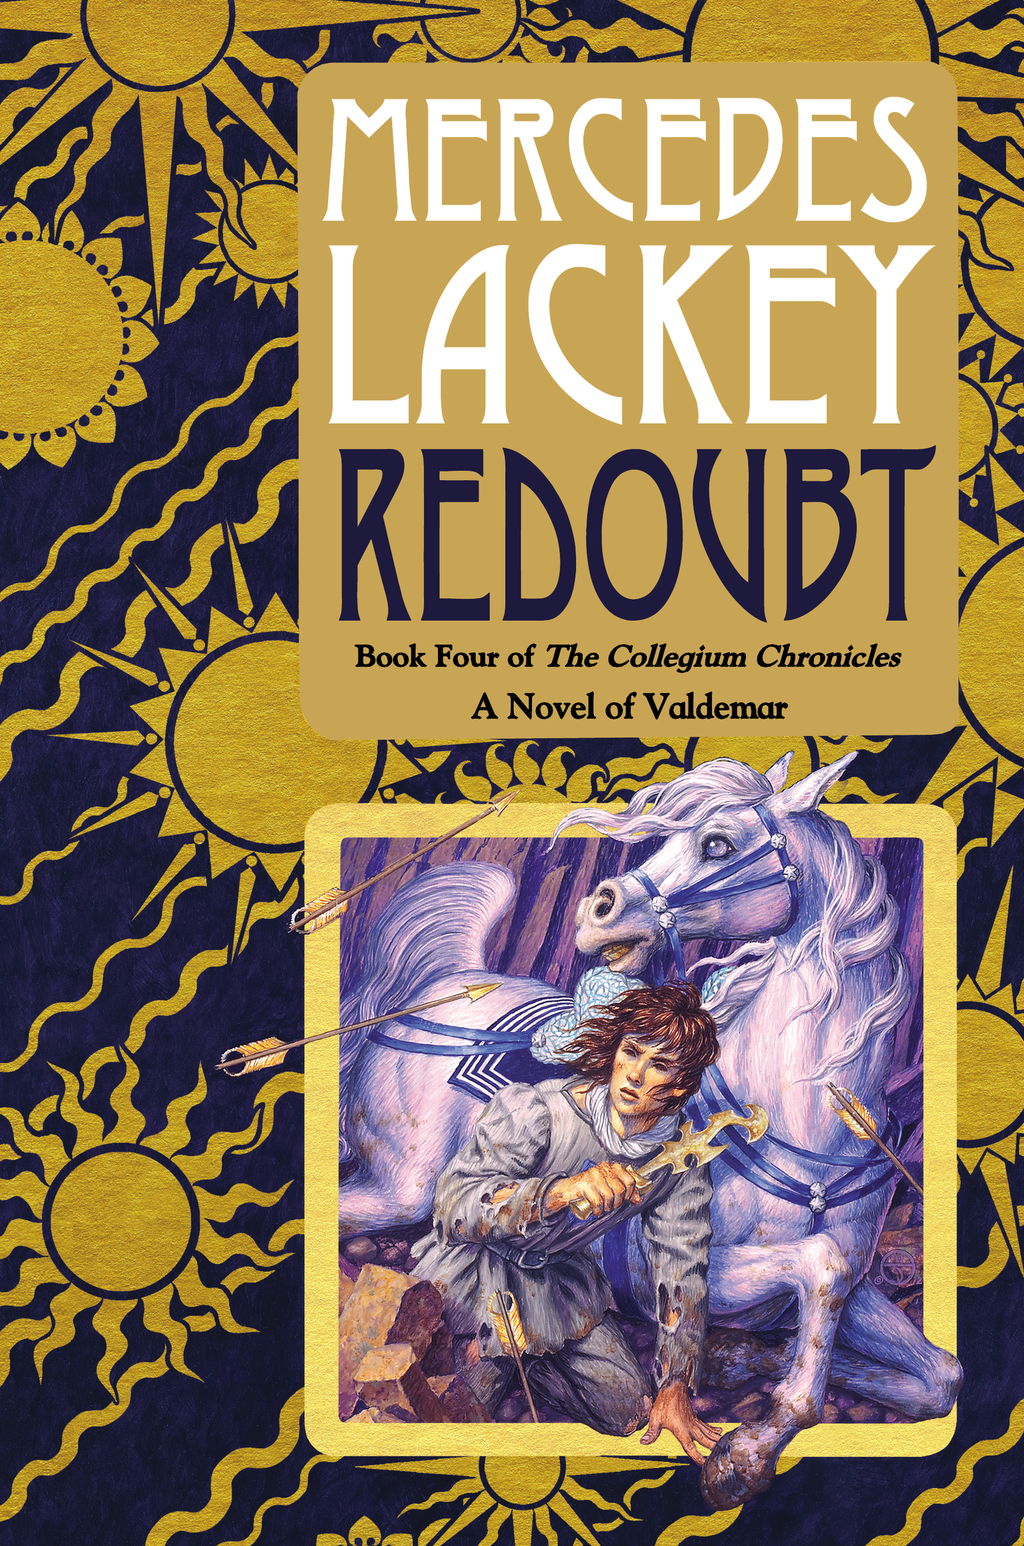 Redoubt By: Mercedes Lackey